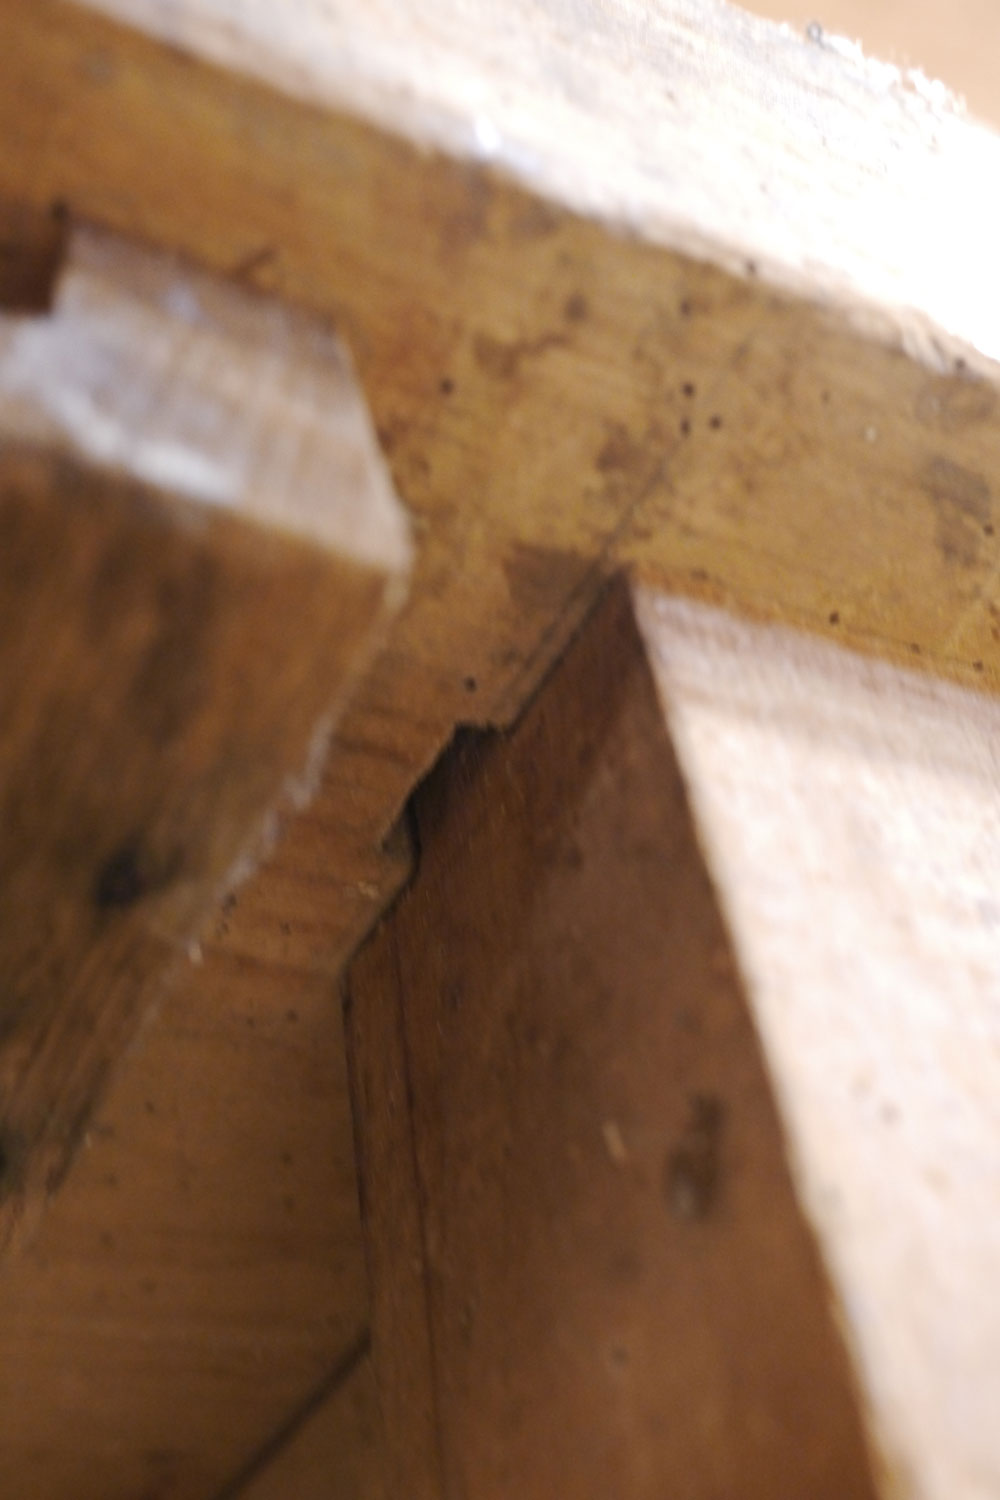 French Workbenches: Old and in the Birth Canal Lost Art